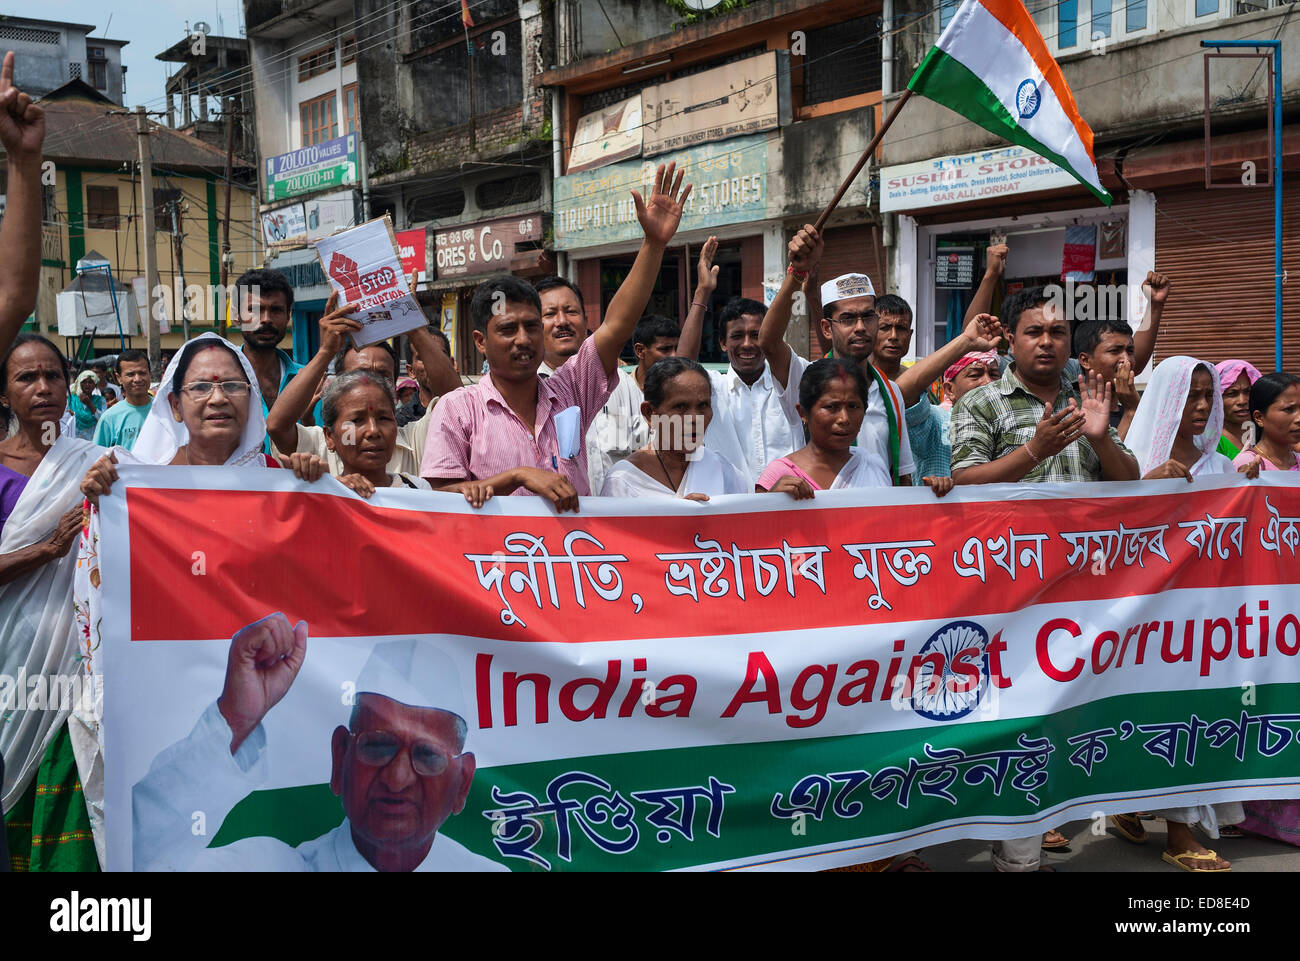 Demonstrators support Anna Hazare wave banner against corruption in Jorhat, Assam, India. - Stock Image